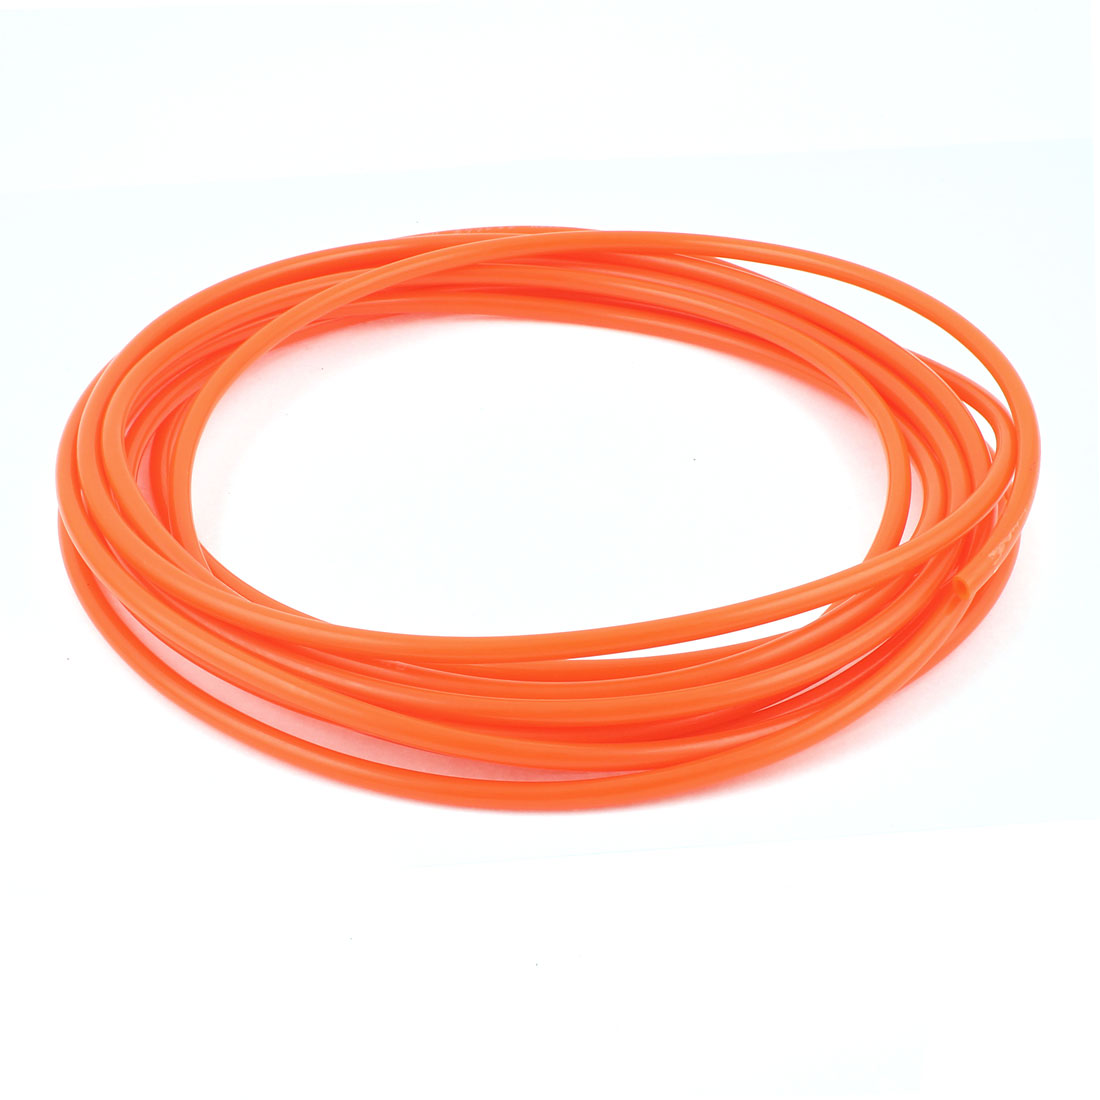 PU Polyurethane Flexible Pneumatic Pipe Tube Hose 6mmx4mm 6 Meter